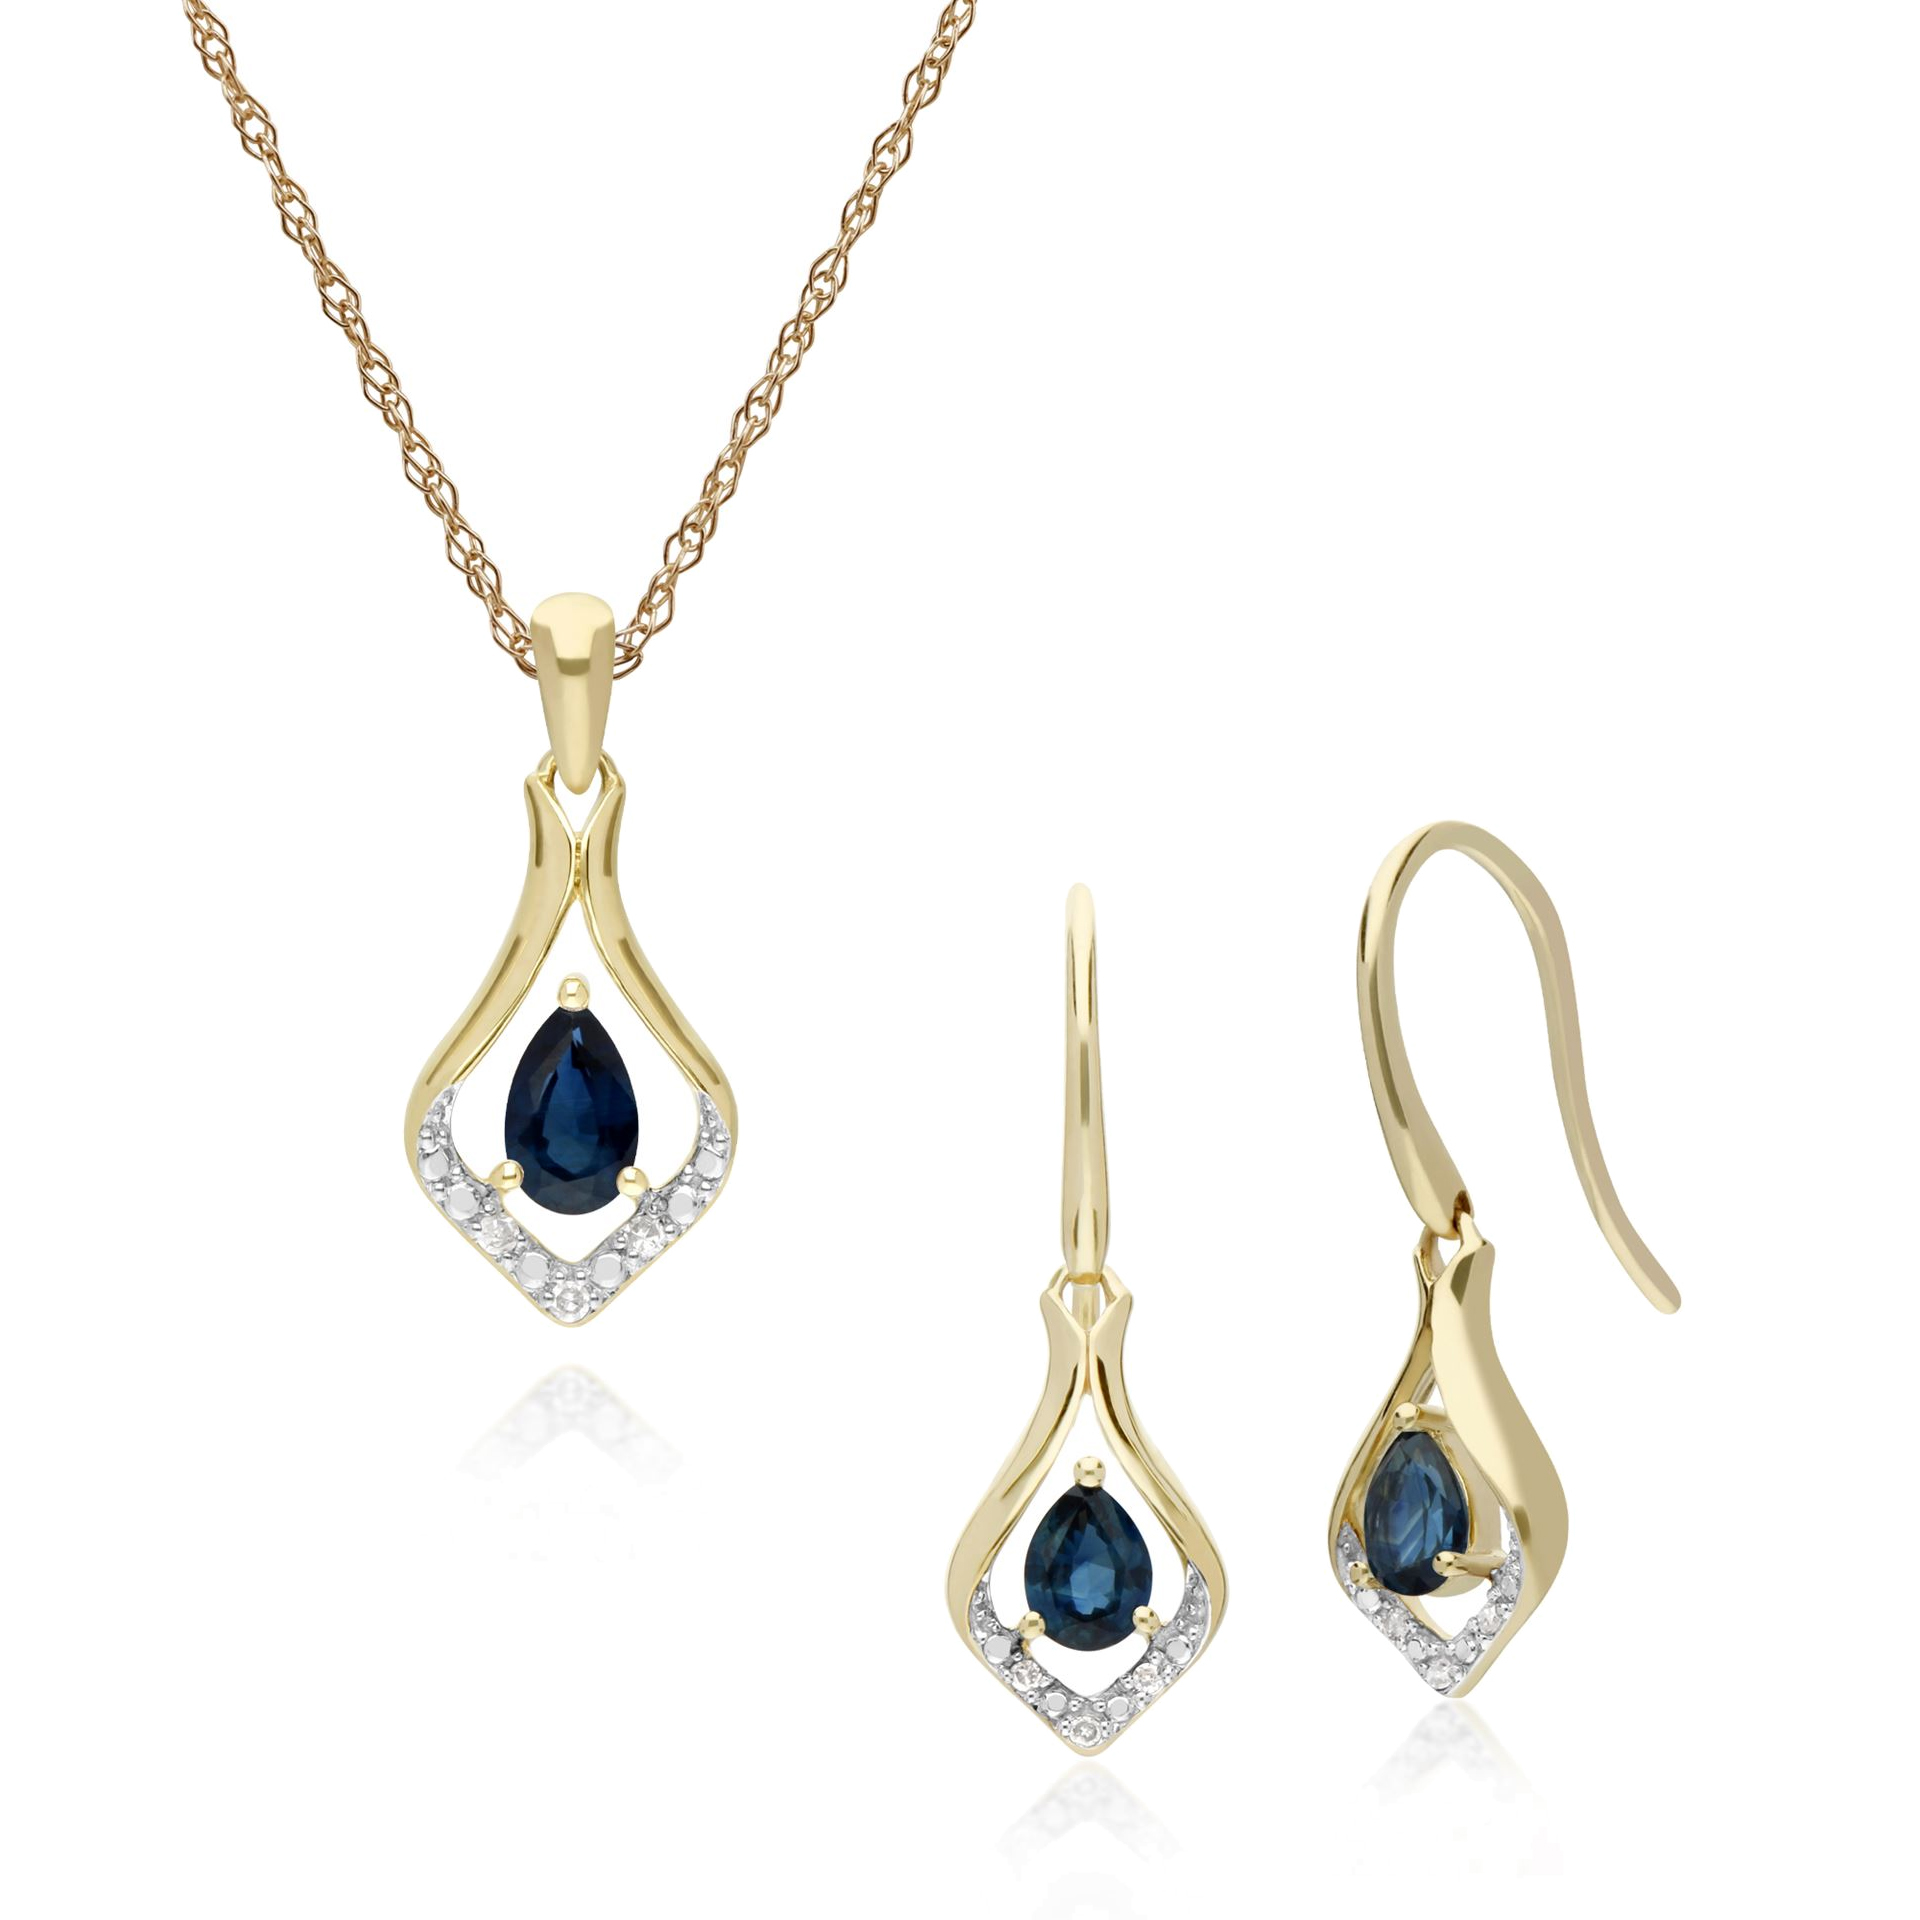 3821c22ea 9ct Yellow Gold Sapphire & Diamond Leaf Drop Earring & 45cm Necklace Set.  Item SKU: 135E1577029-135P1915029